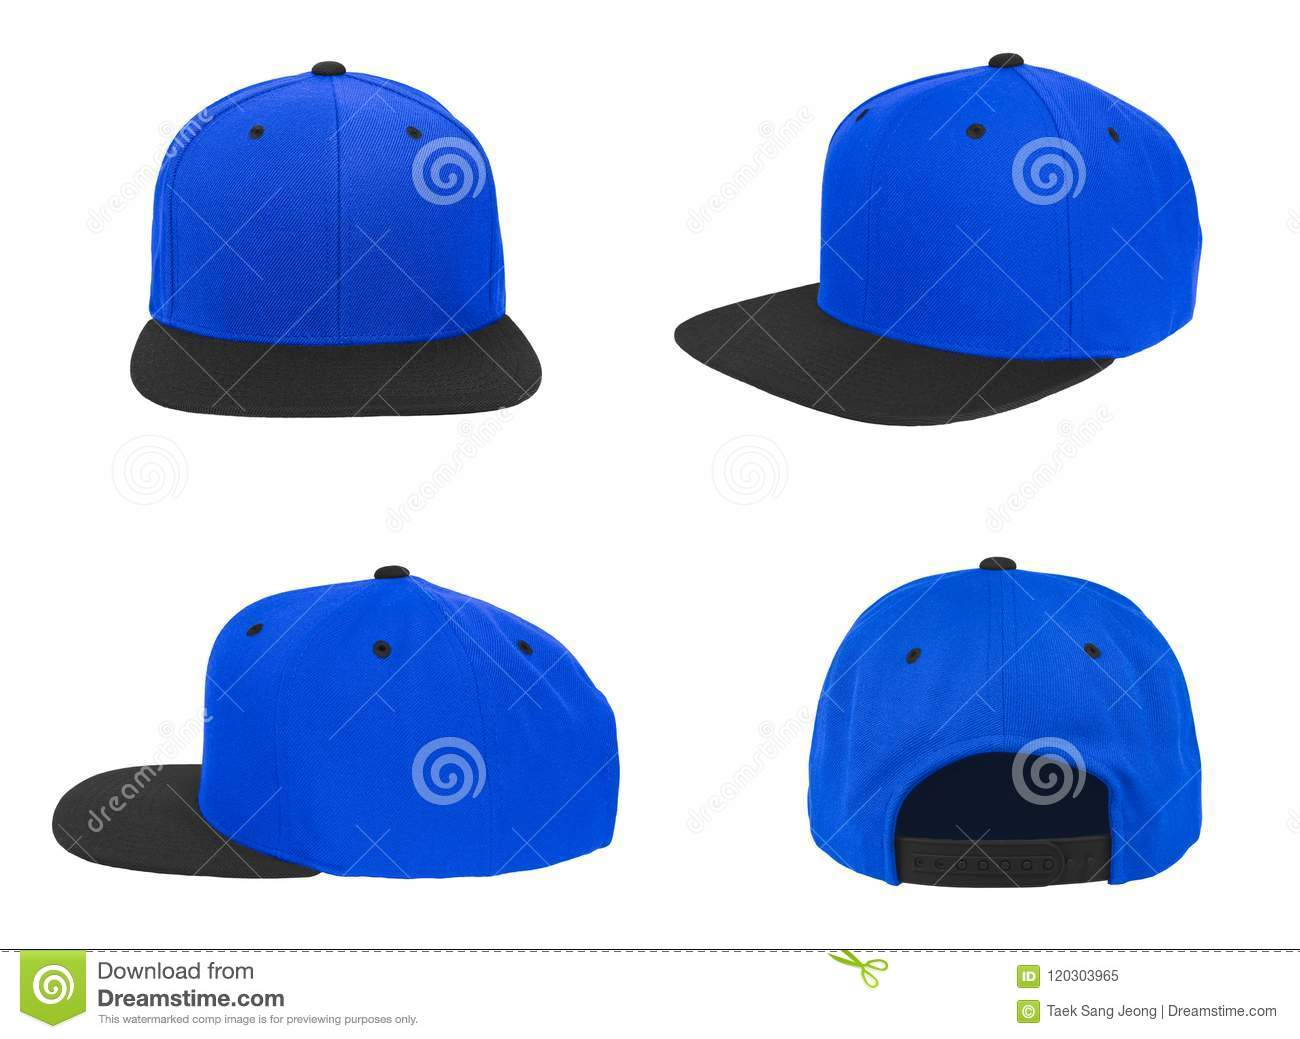 Blank baseball snap back cap two tone color black blue on white background 3f5efc8abc97